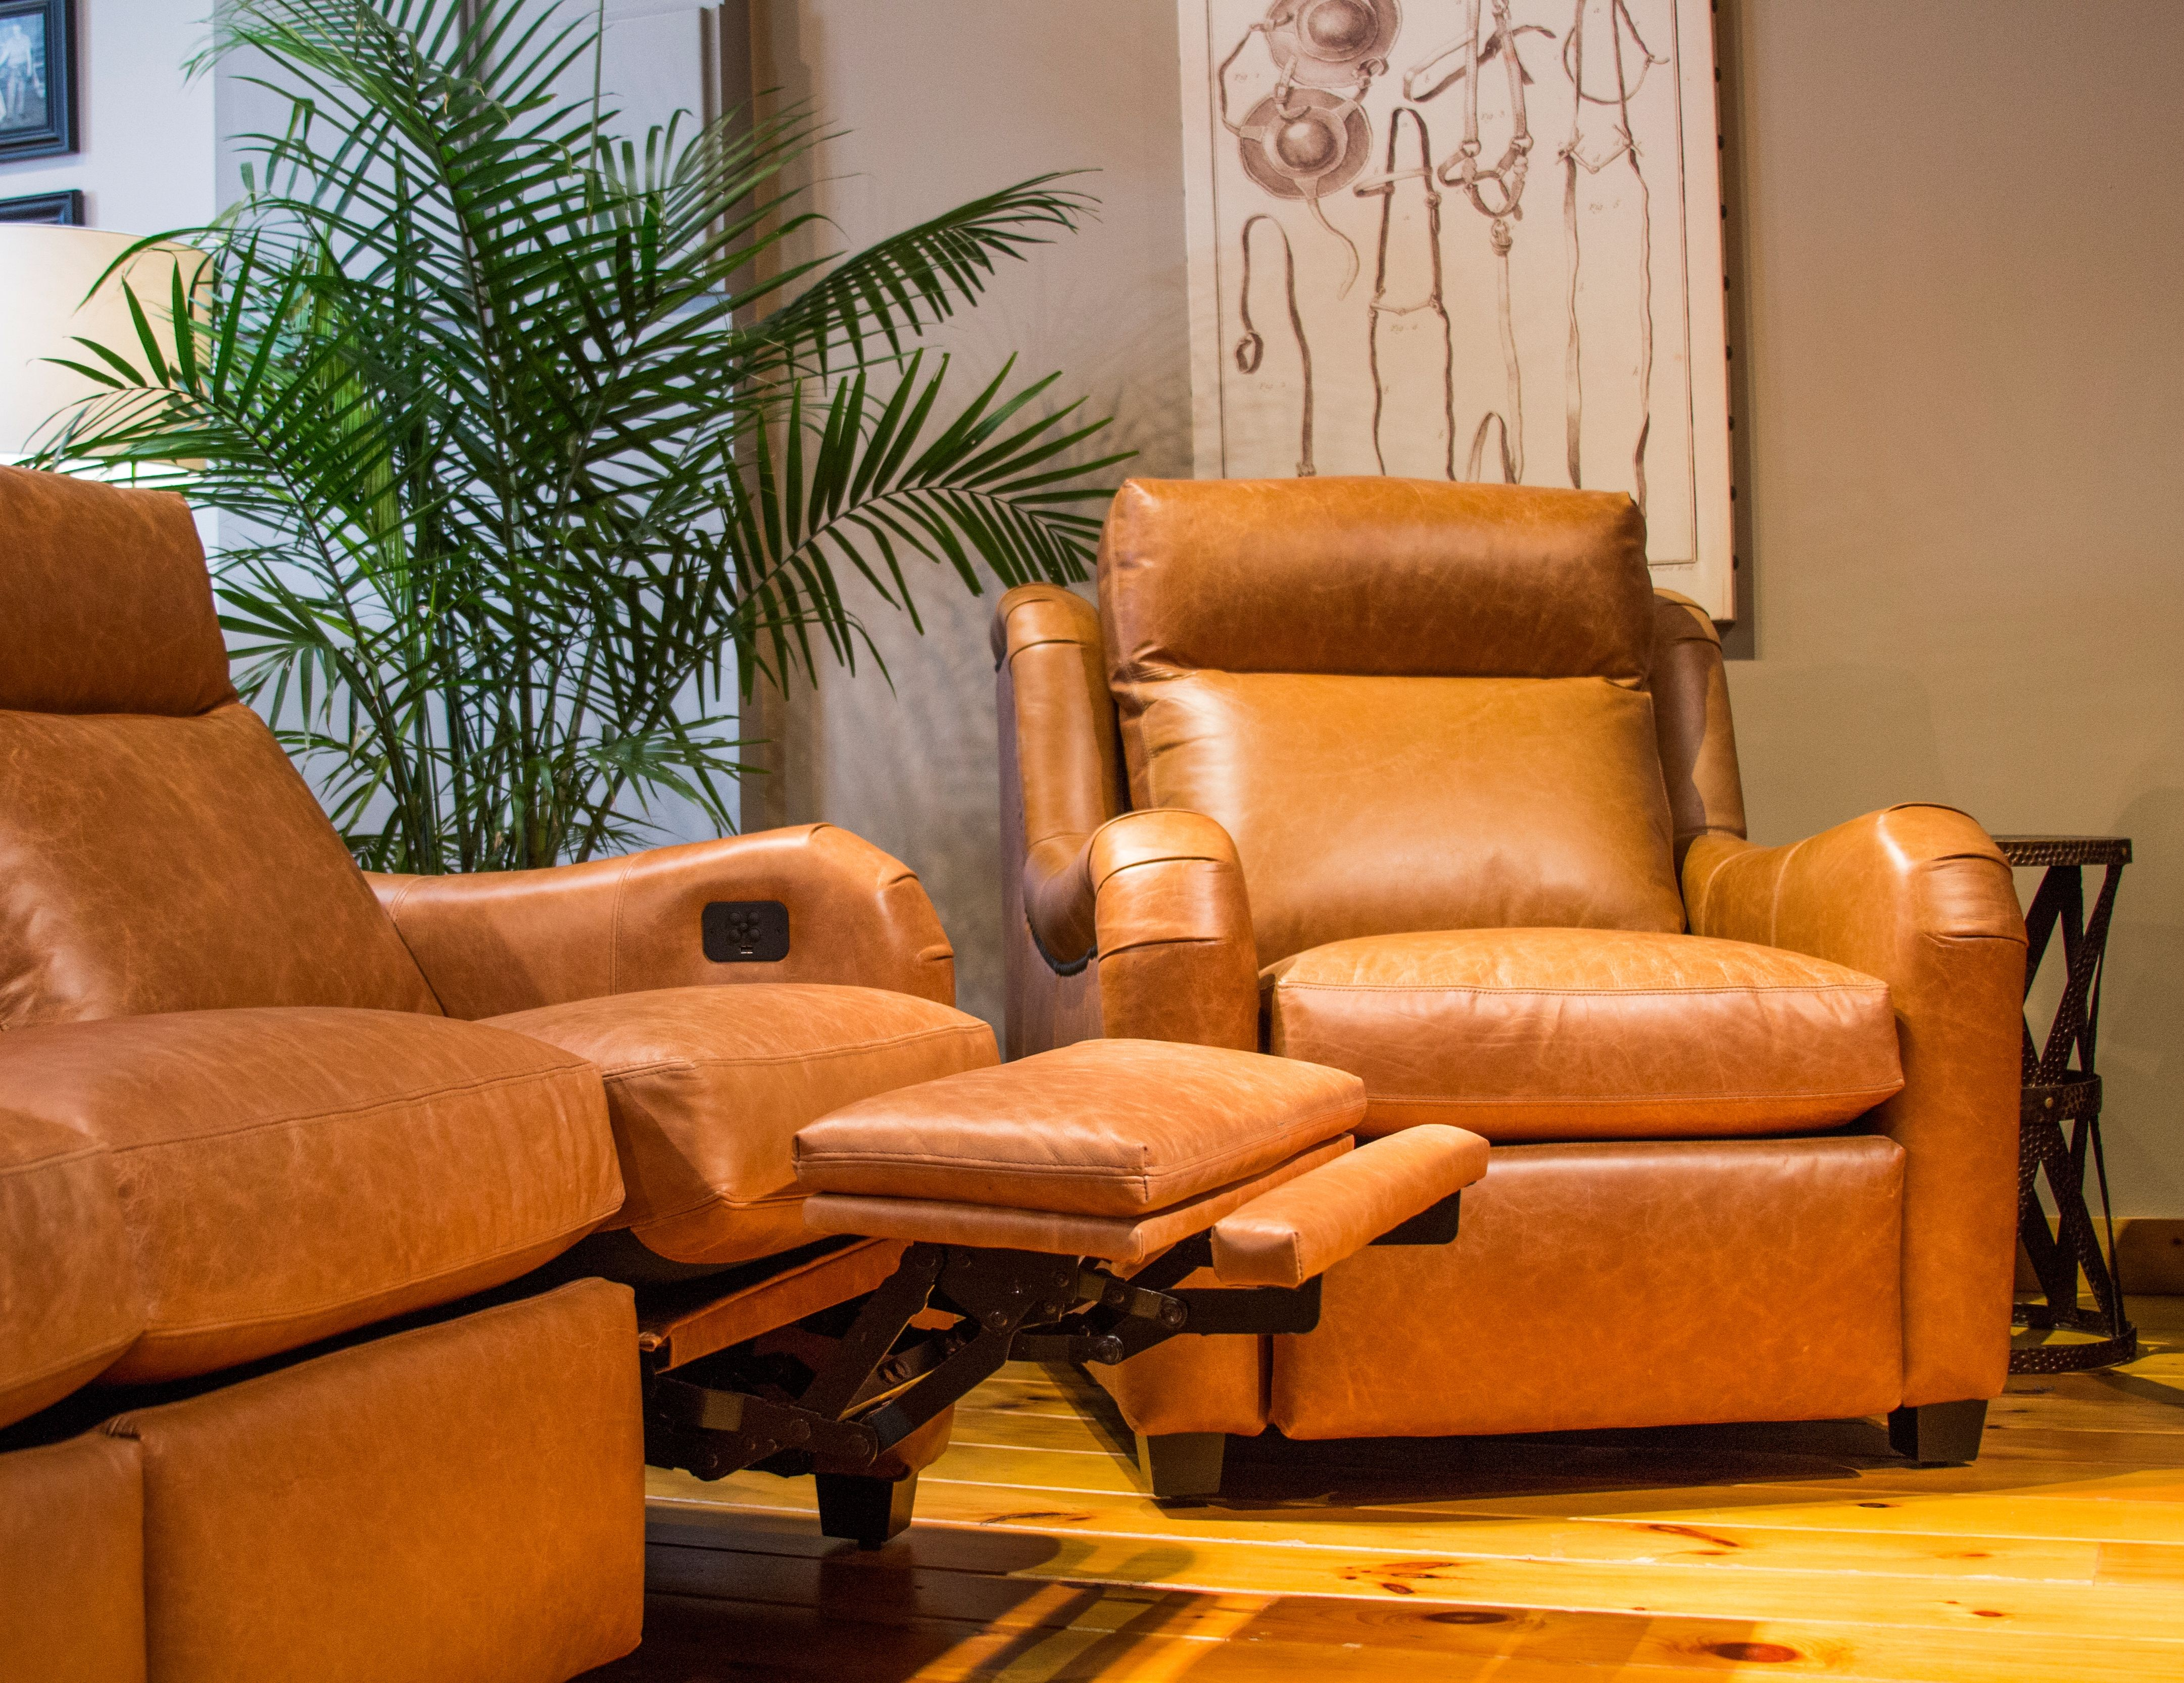 Looking for a way to make your #classic tropical? We love reclining with a palm in view! 😎☀️ •⁠⠀⁠ •⁠⠀⁠ Browse our Classic Motion! 👉🏻 LINKIN.BIO⁠  #motion #classicleather #since1966 #recliningsofa #motorizedchair #motorizedfurniture #leather #madeinnorthcarolina #madeinamerica #howyouhome #mycreativeinterior #crafted #livingroomgoals #interiortrends #makeityours #supportlocal #shoplocal #decorlovers #superiorquality #leatherupholstery